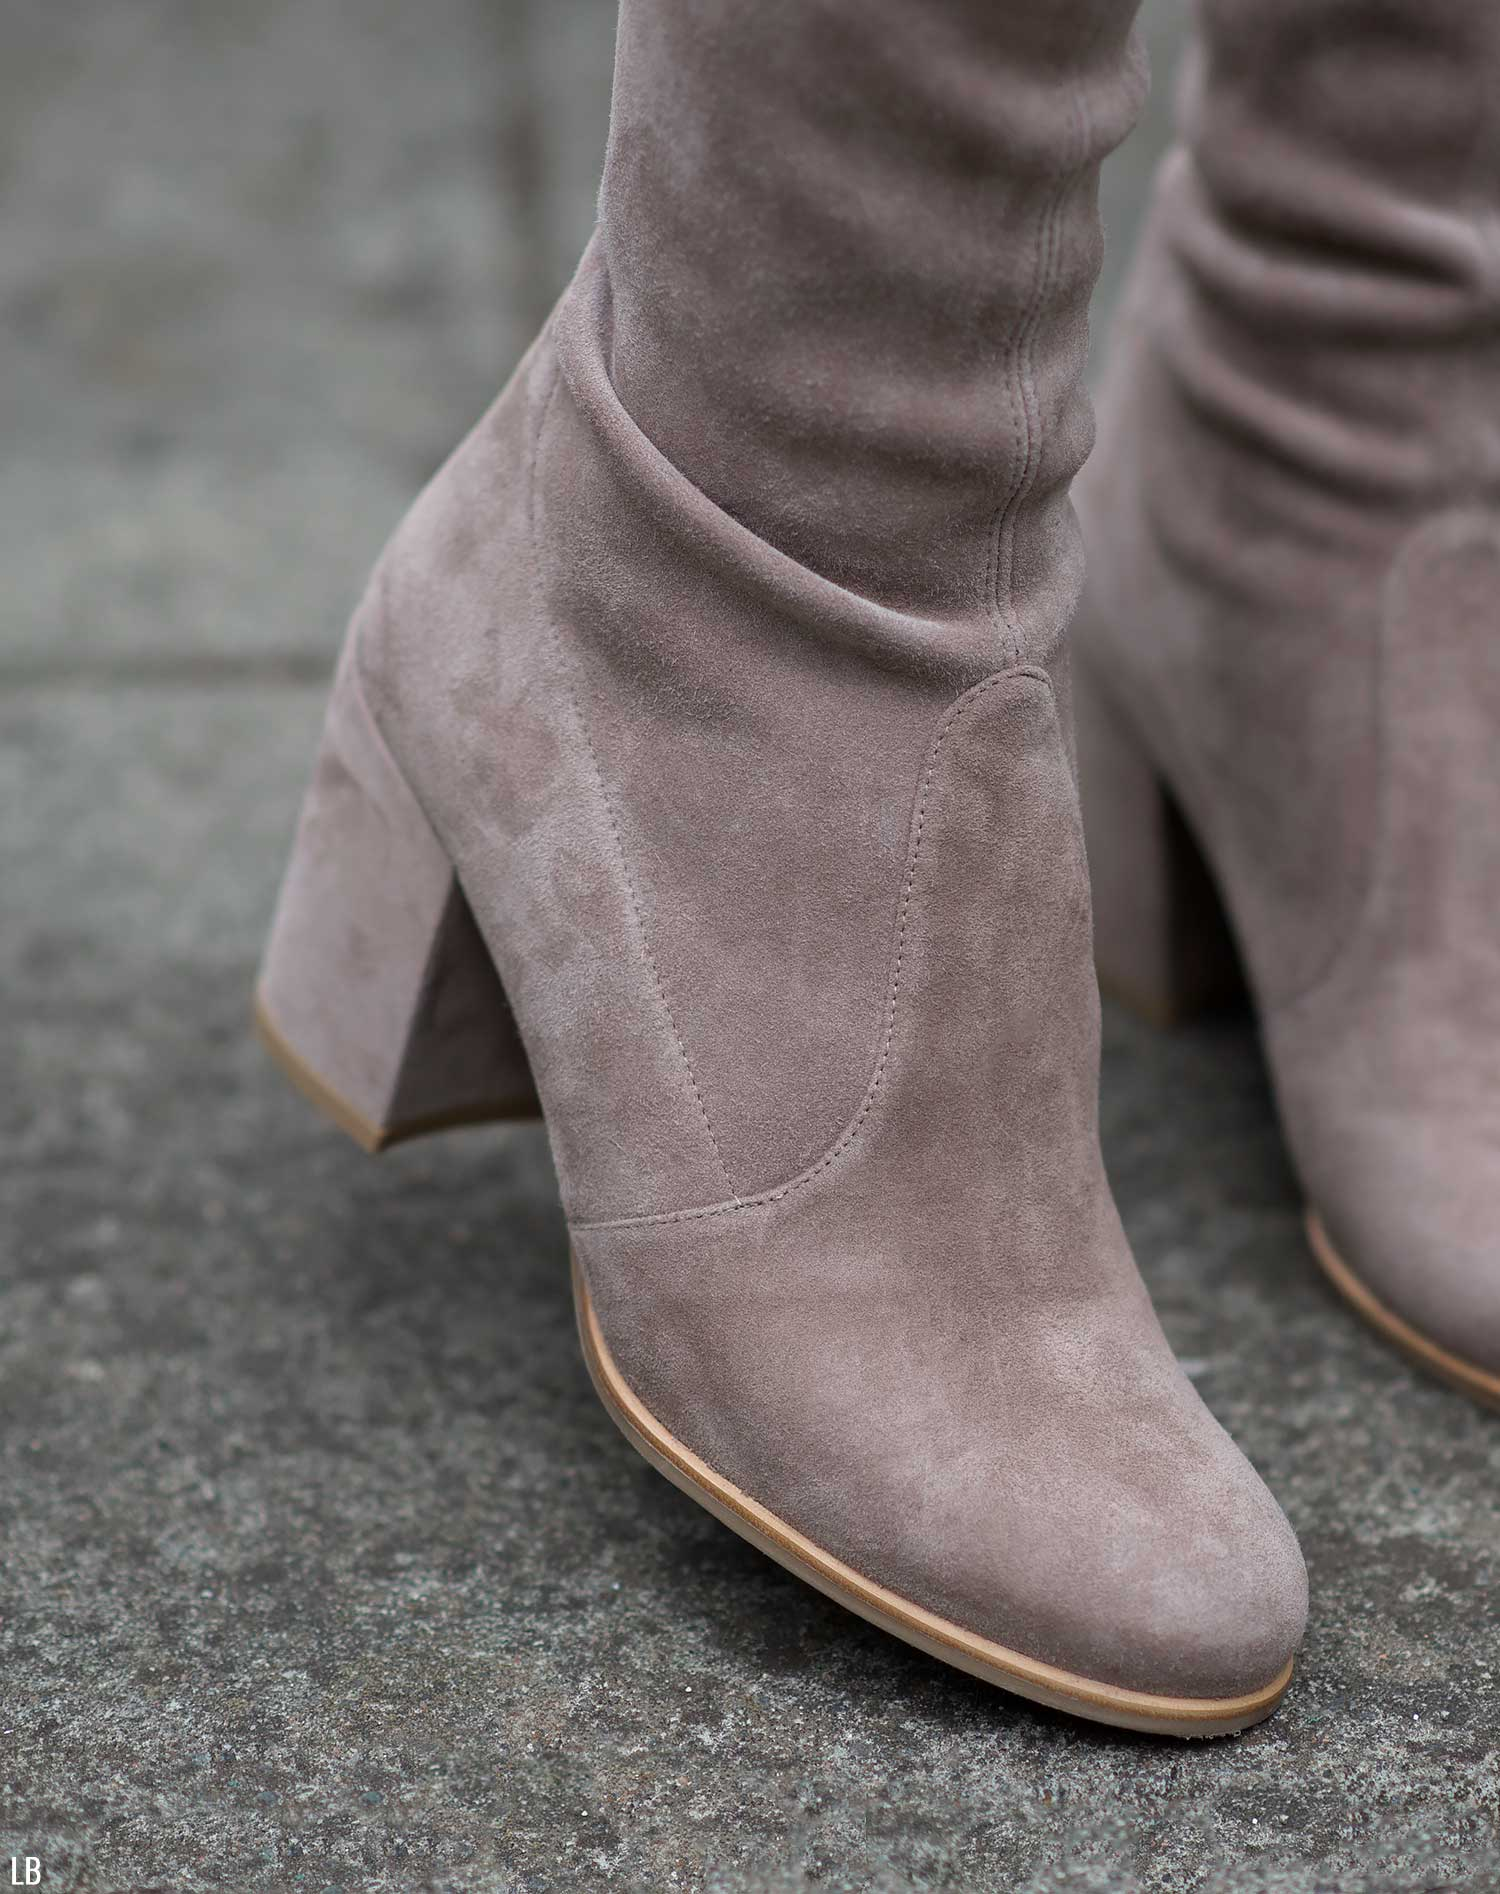 ac1eec600f3 Buy these boots at Stuart Weitzman UK here and US here. If you liked my  review